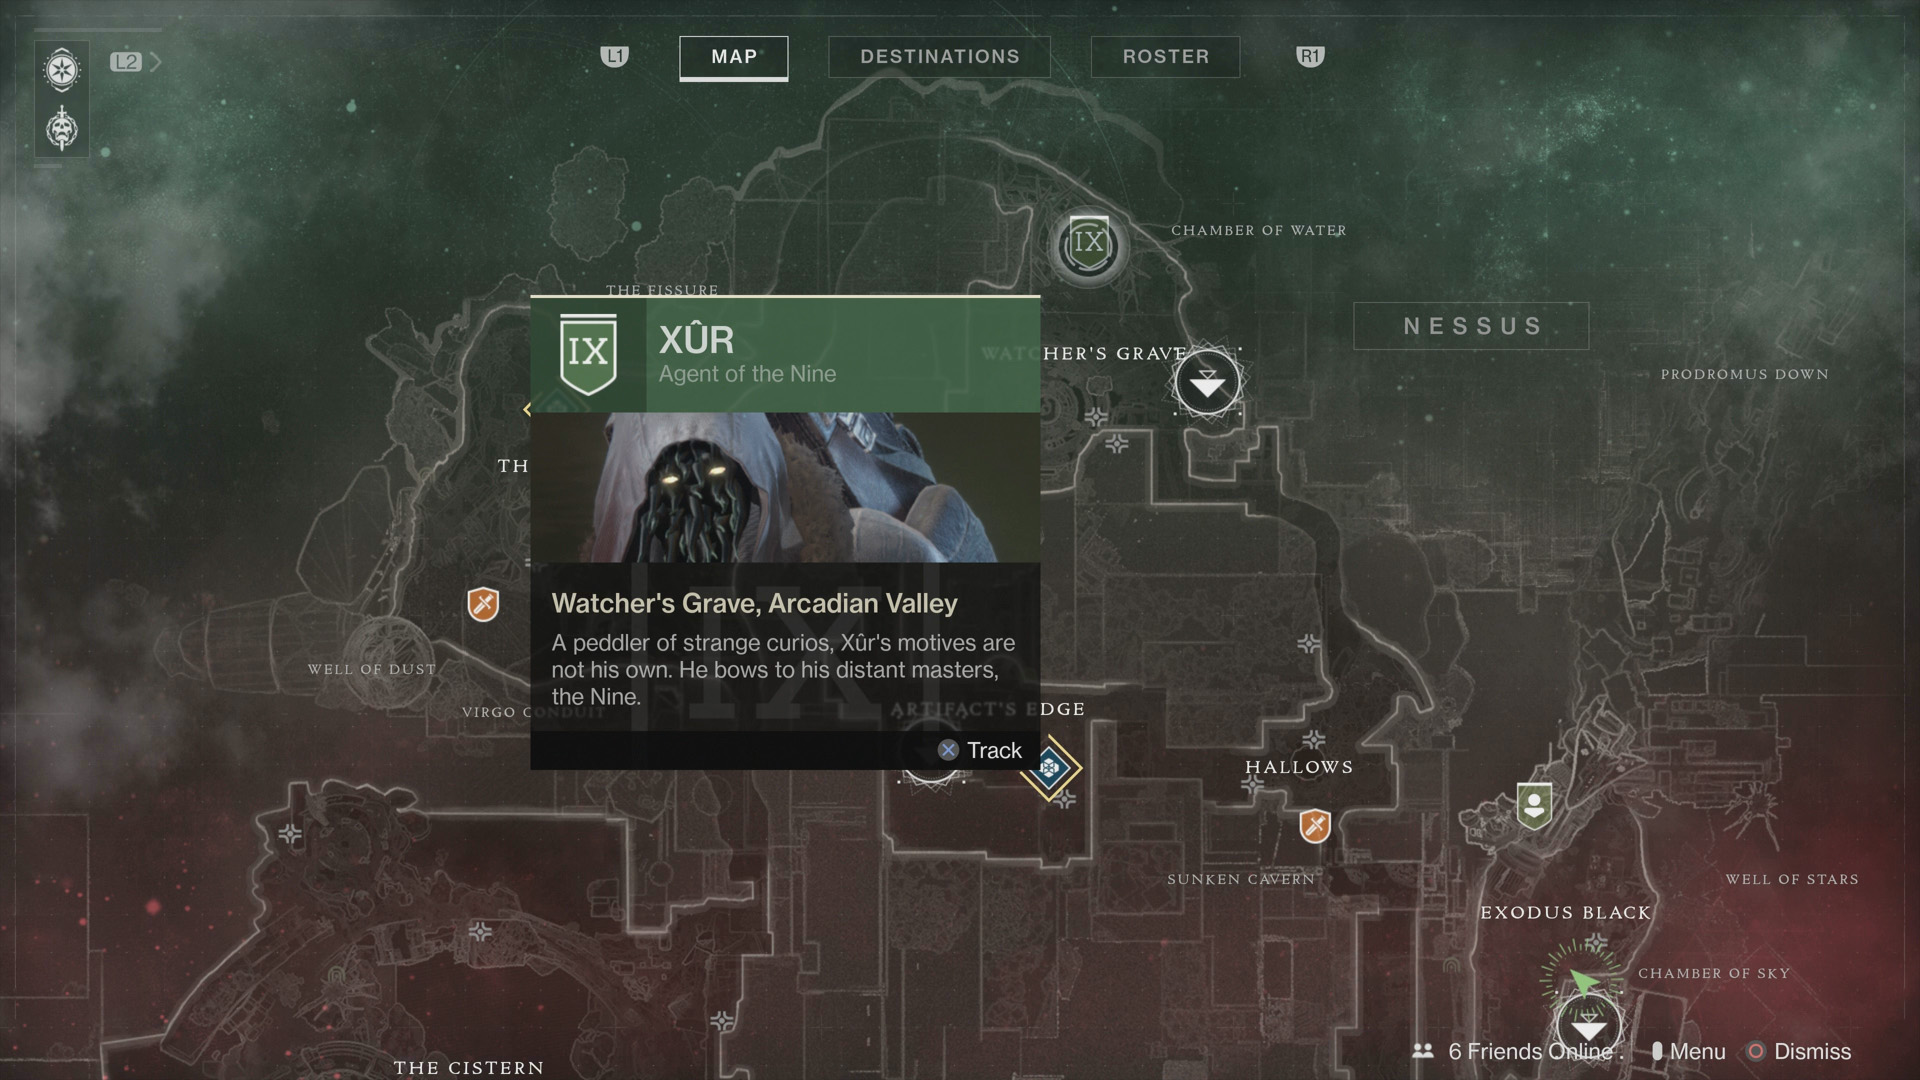 Destiny 2 - Where to Find Xur September 15, 2017